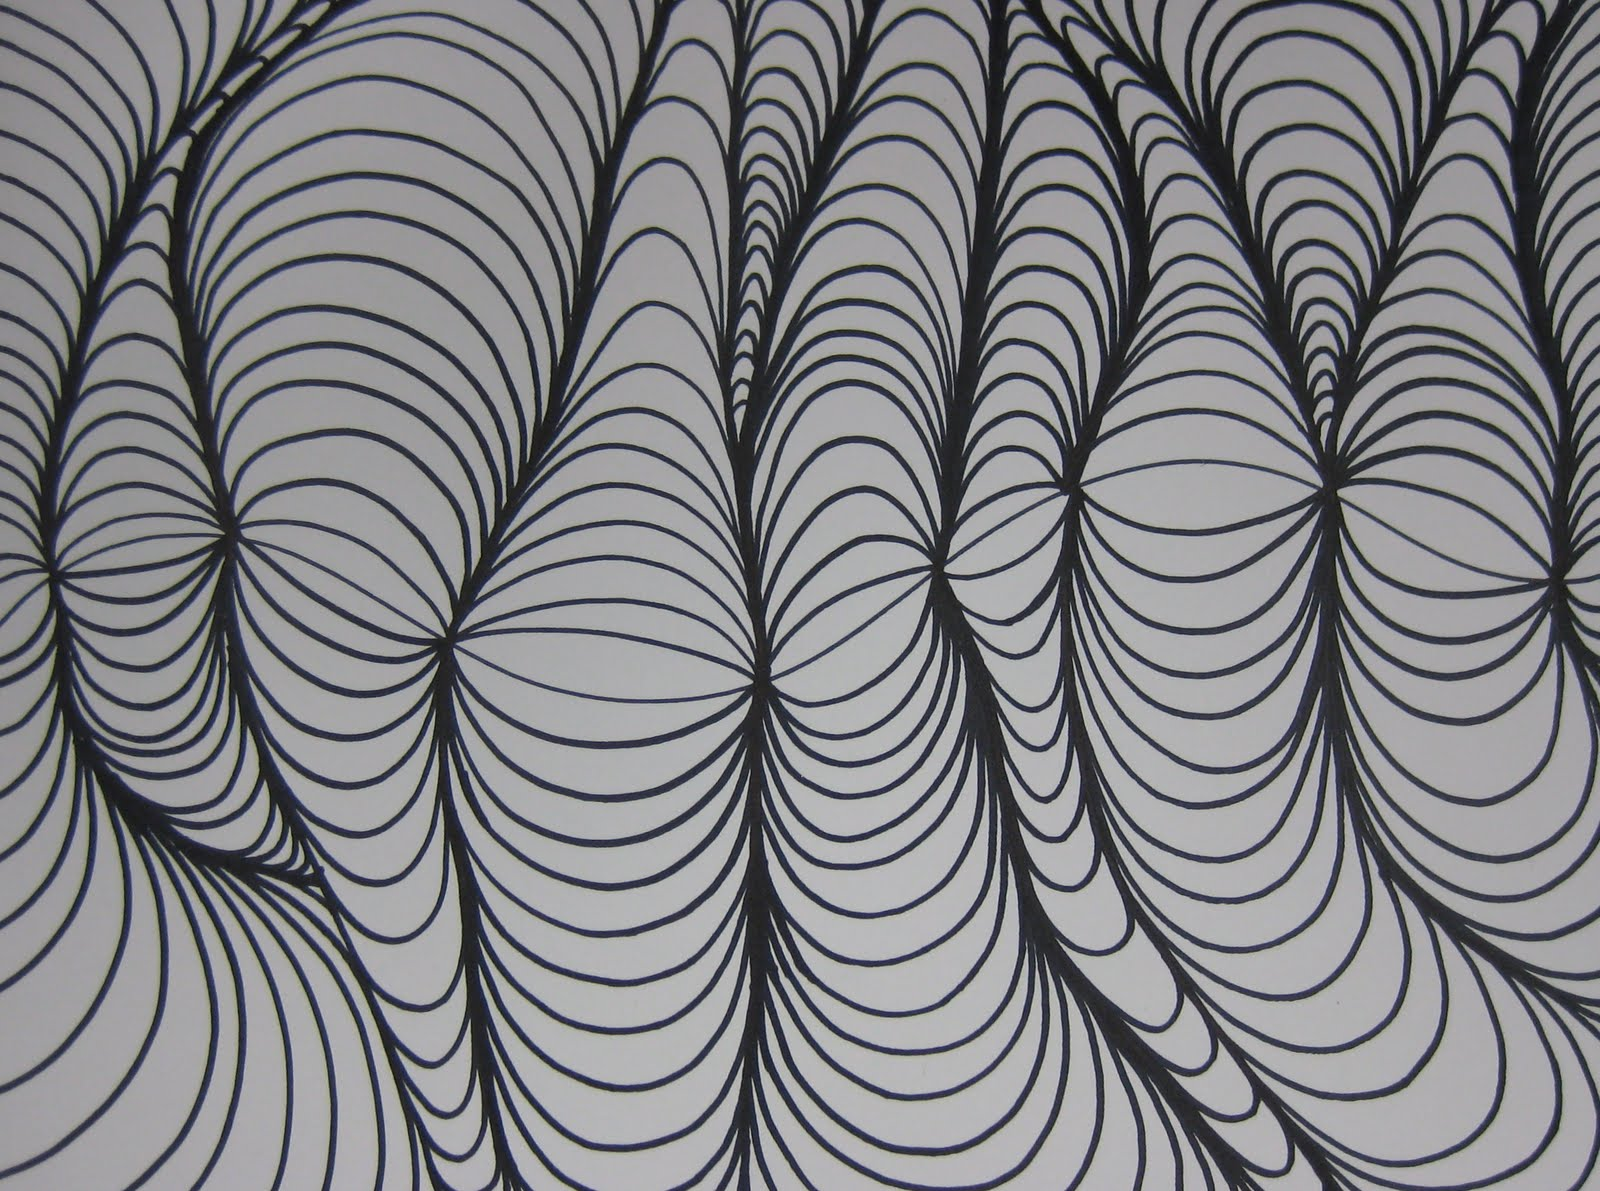 Lines And Designs : Line designs with shading teachkidsart